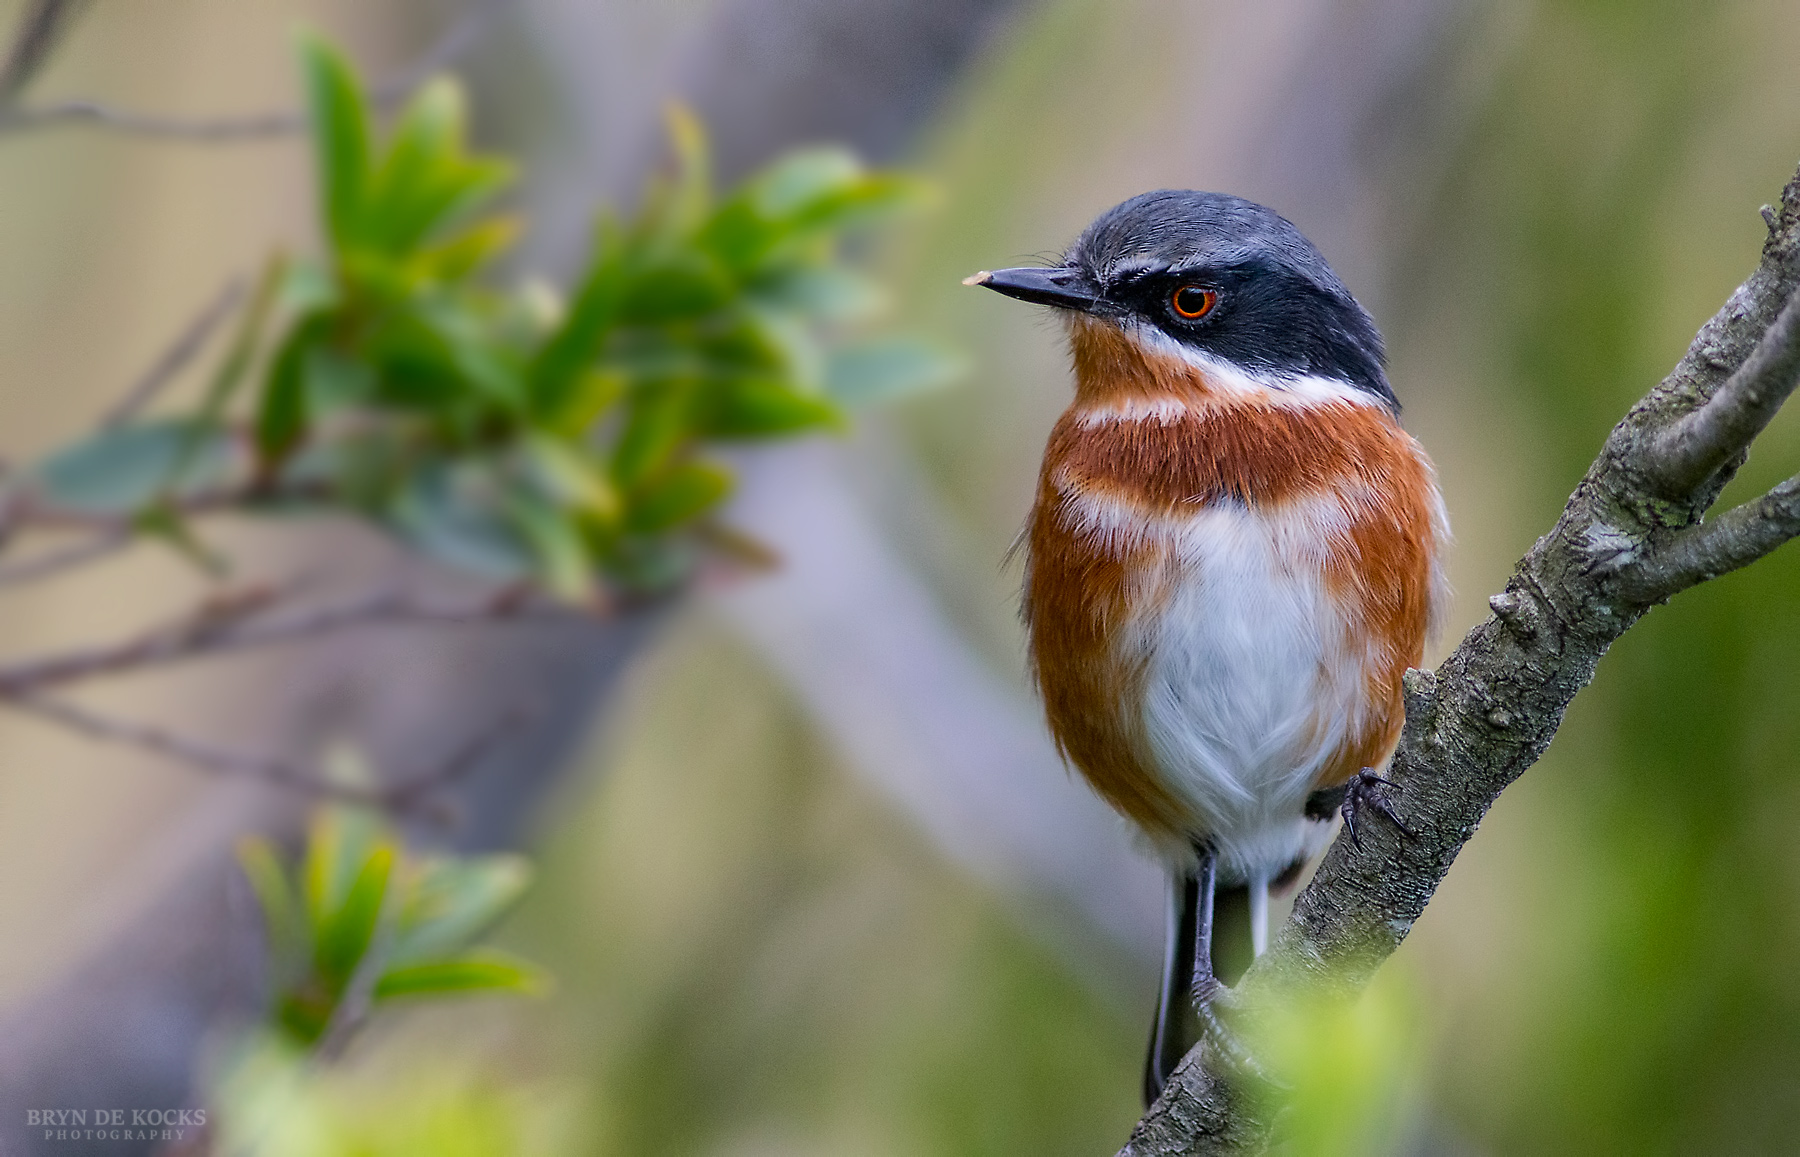 Small brown and white bird in the Pringle Bay Biosphere